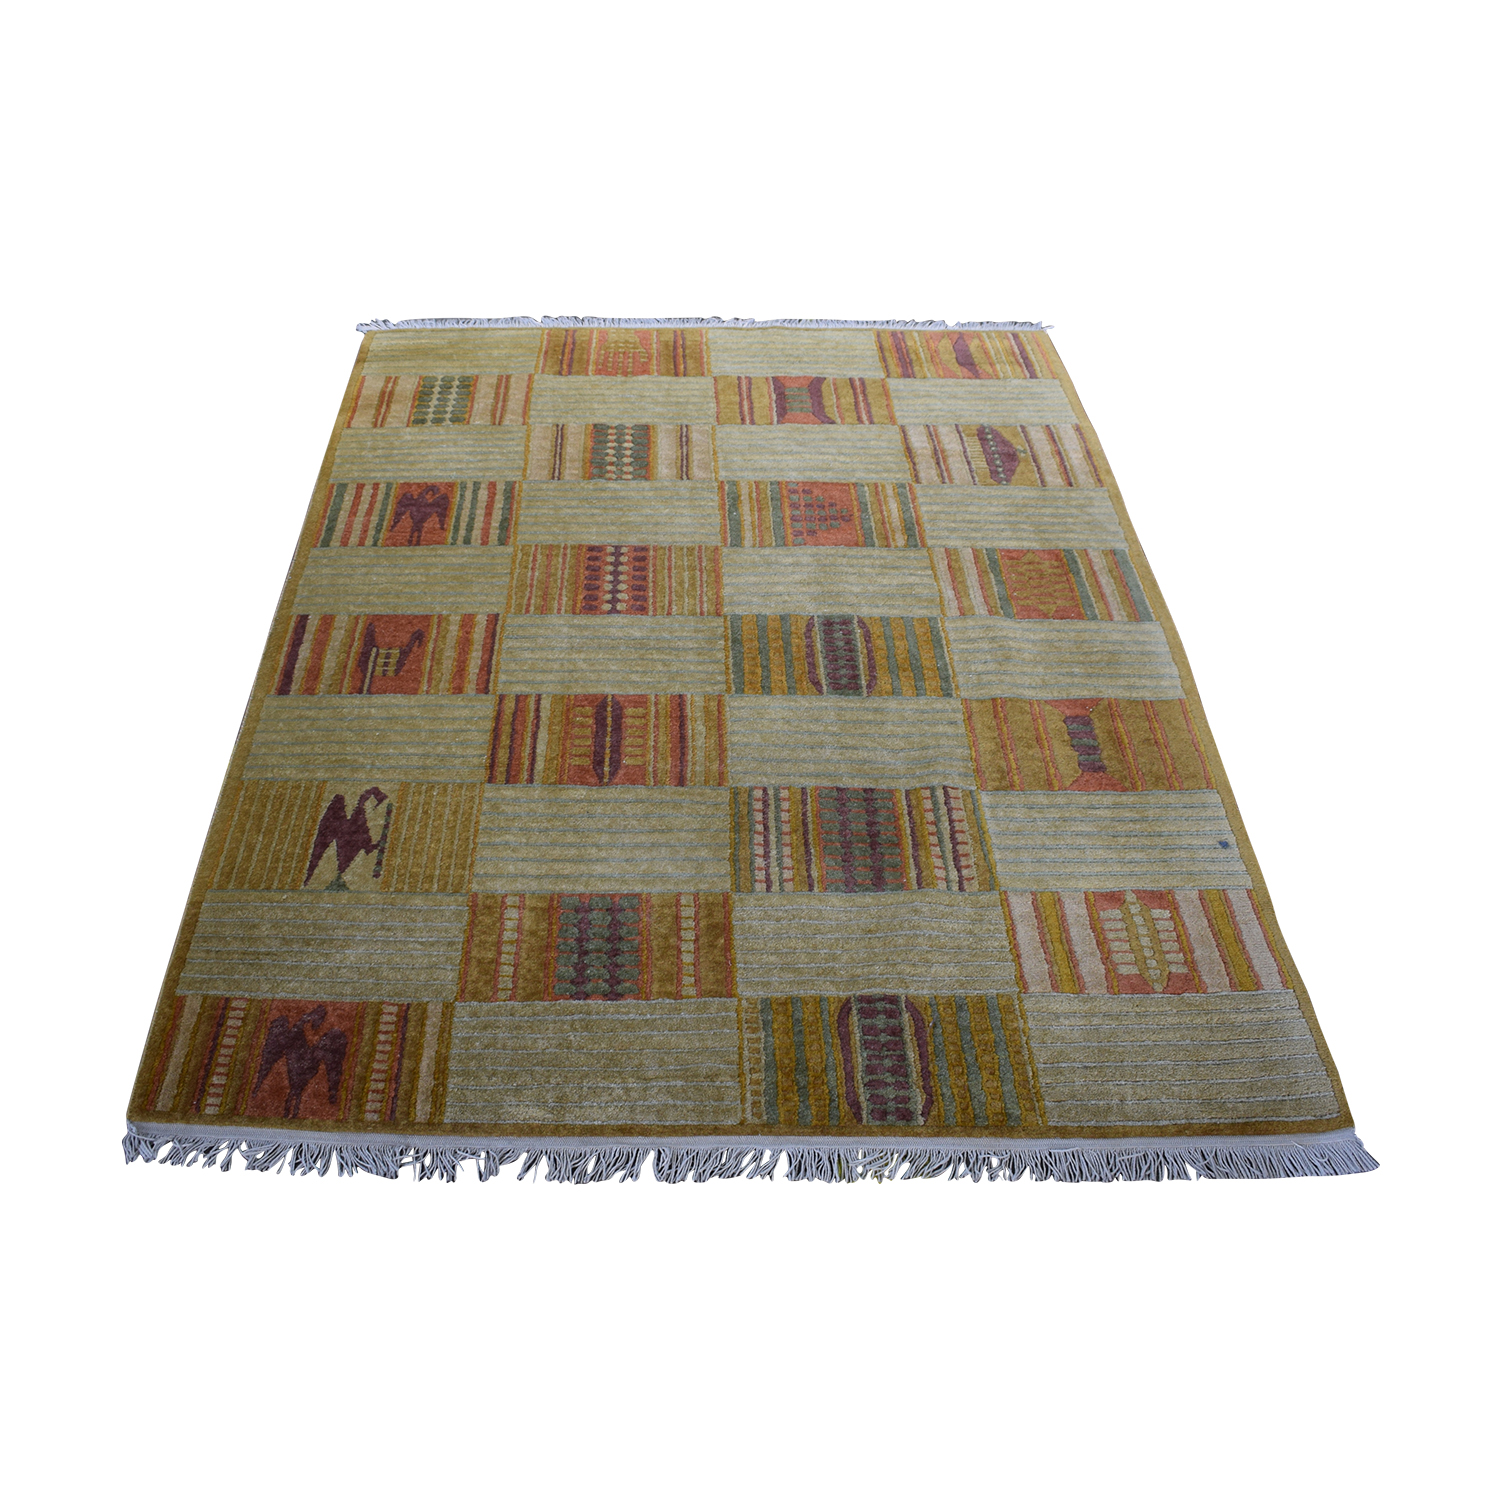 ABC Carpet & Home ABC Carpet & Home Hand-Knotted Wool Rug Decor